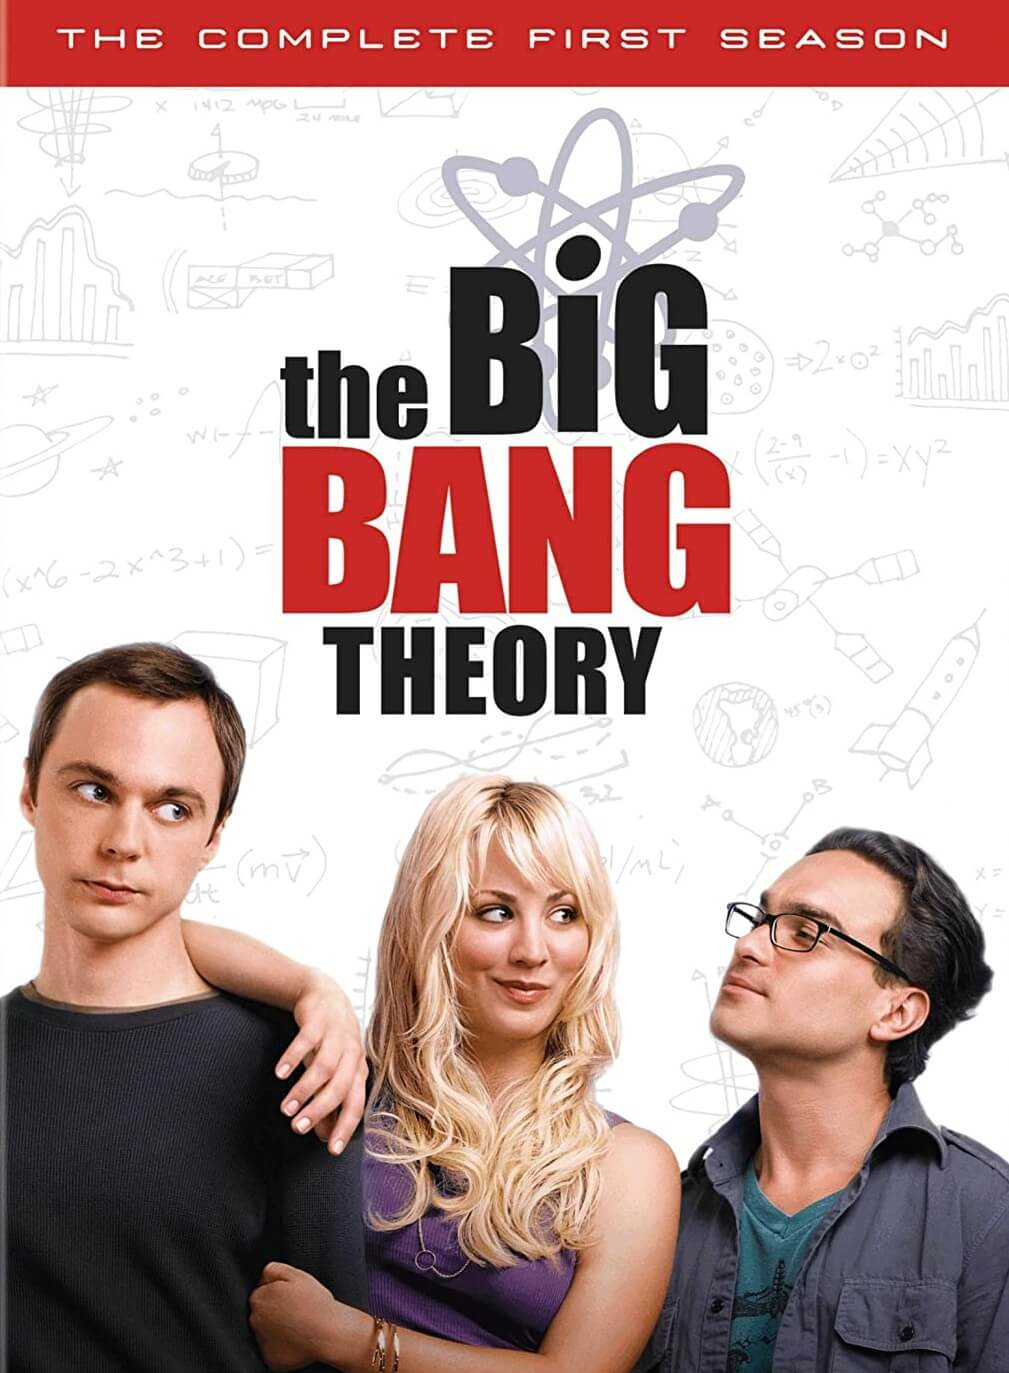 The Big Bang Theory S01 E16